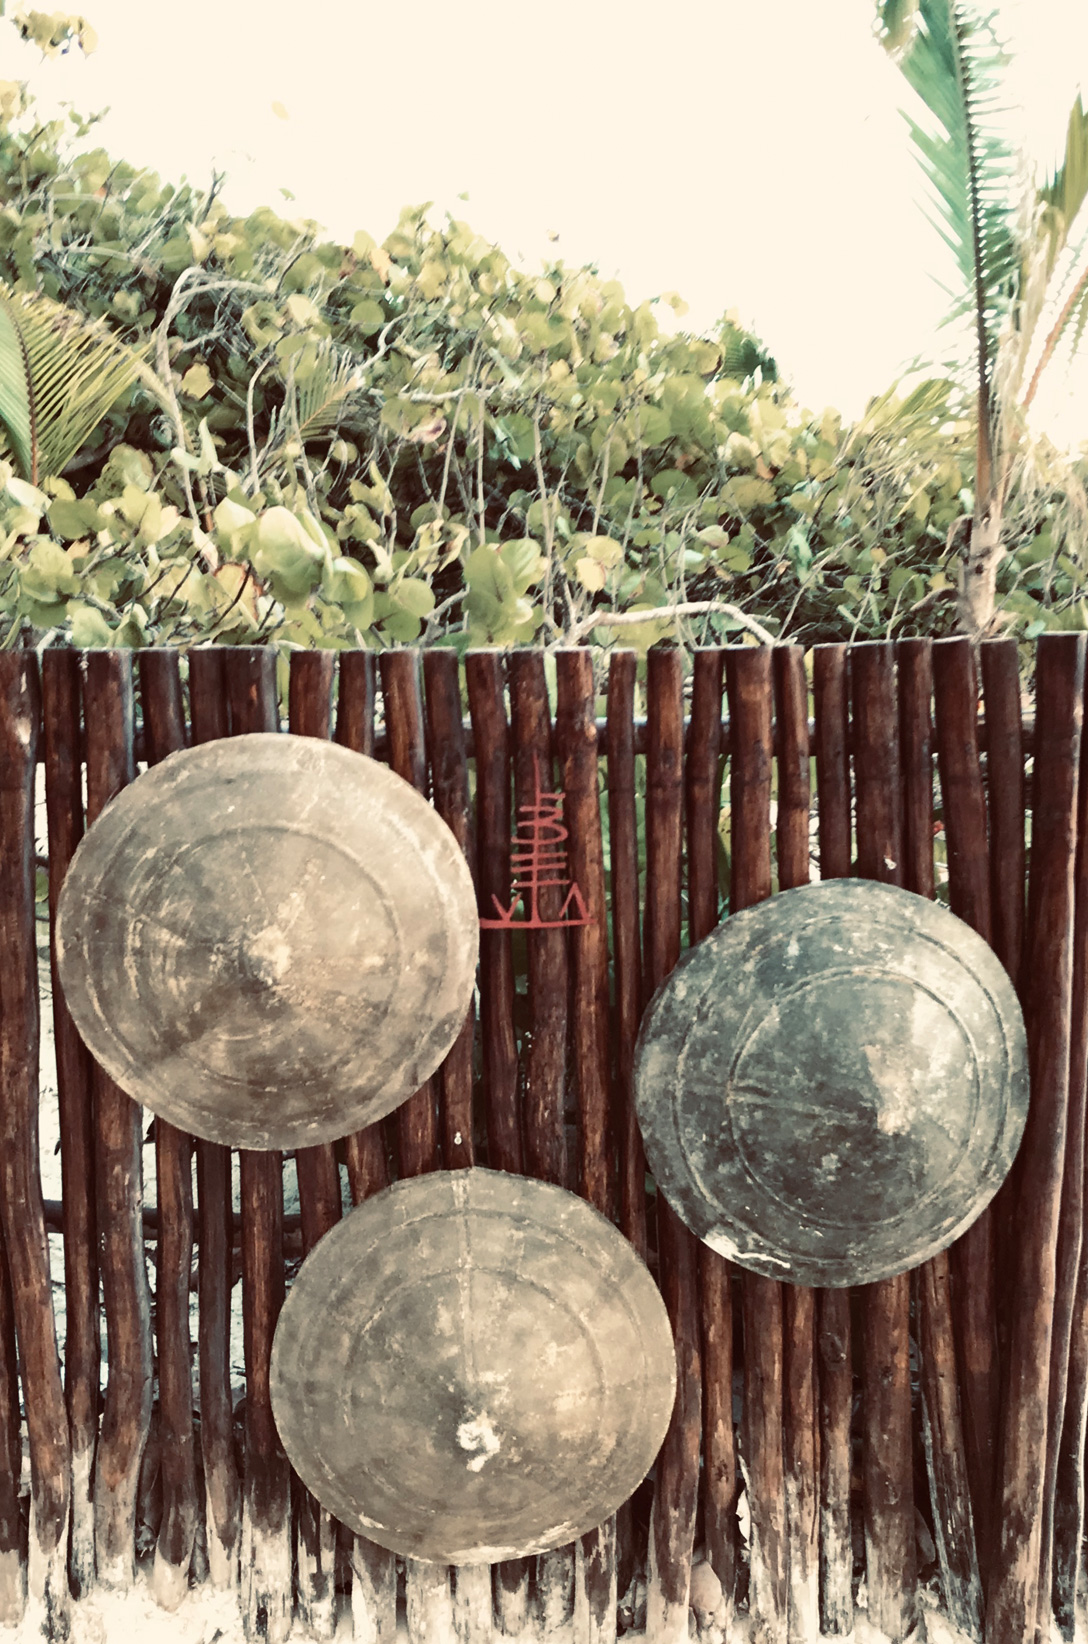 wood, fence, shields, logo, palm, trees, bushes, green, sand, beach, tulum, libelula, glamping